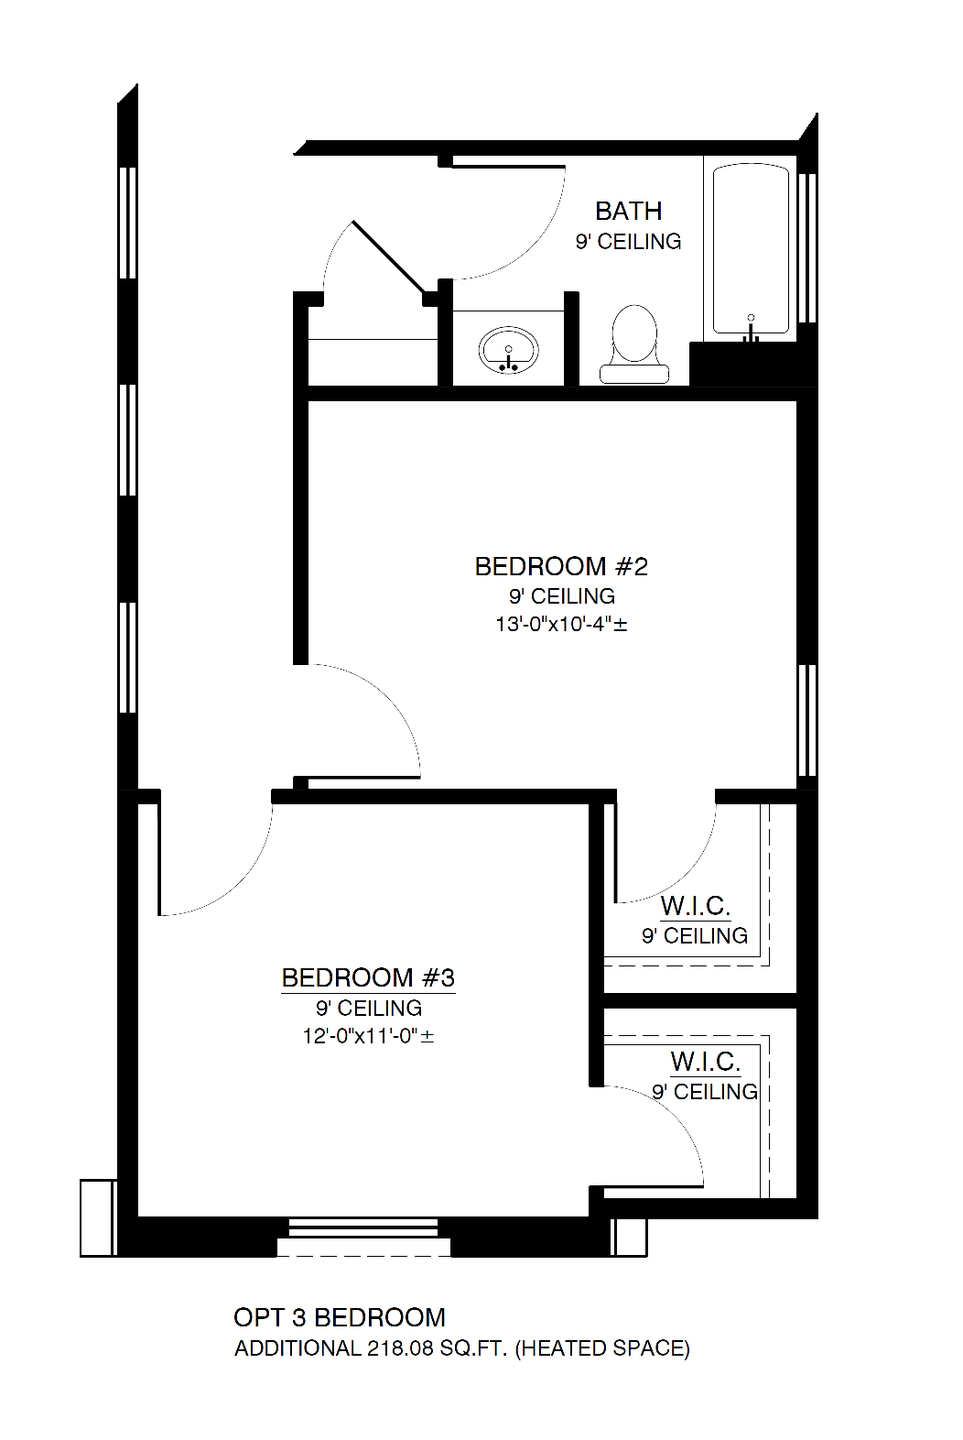 The Anne Optional 3rd Bedroom